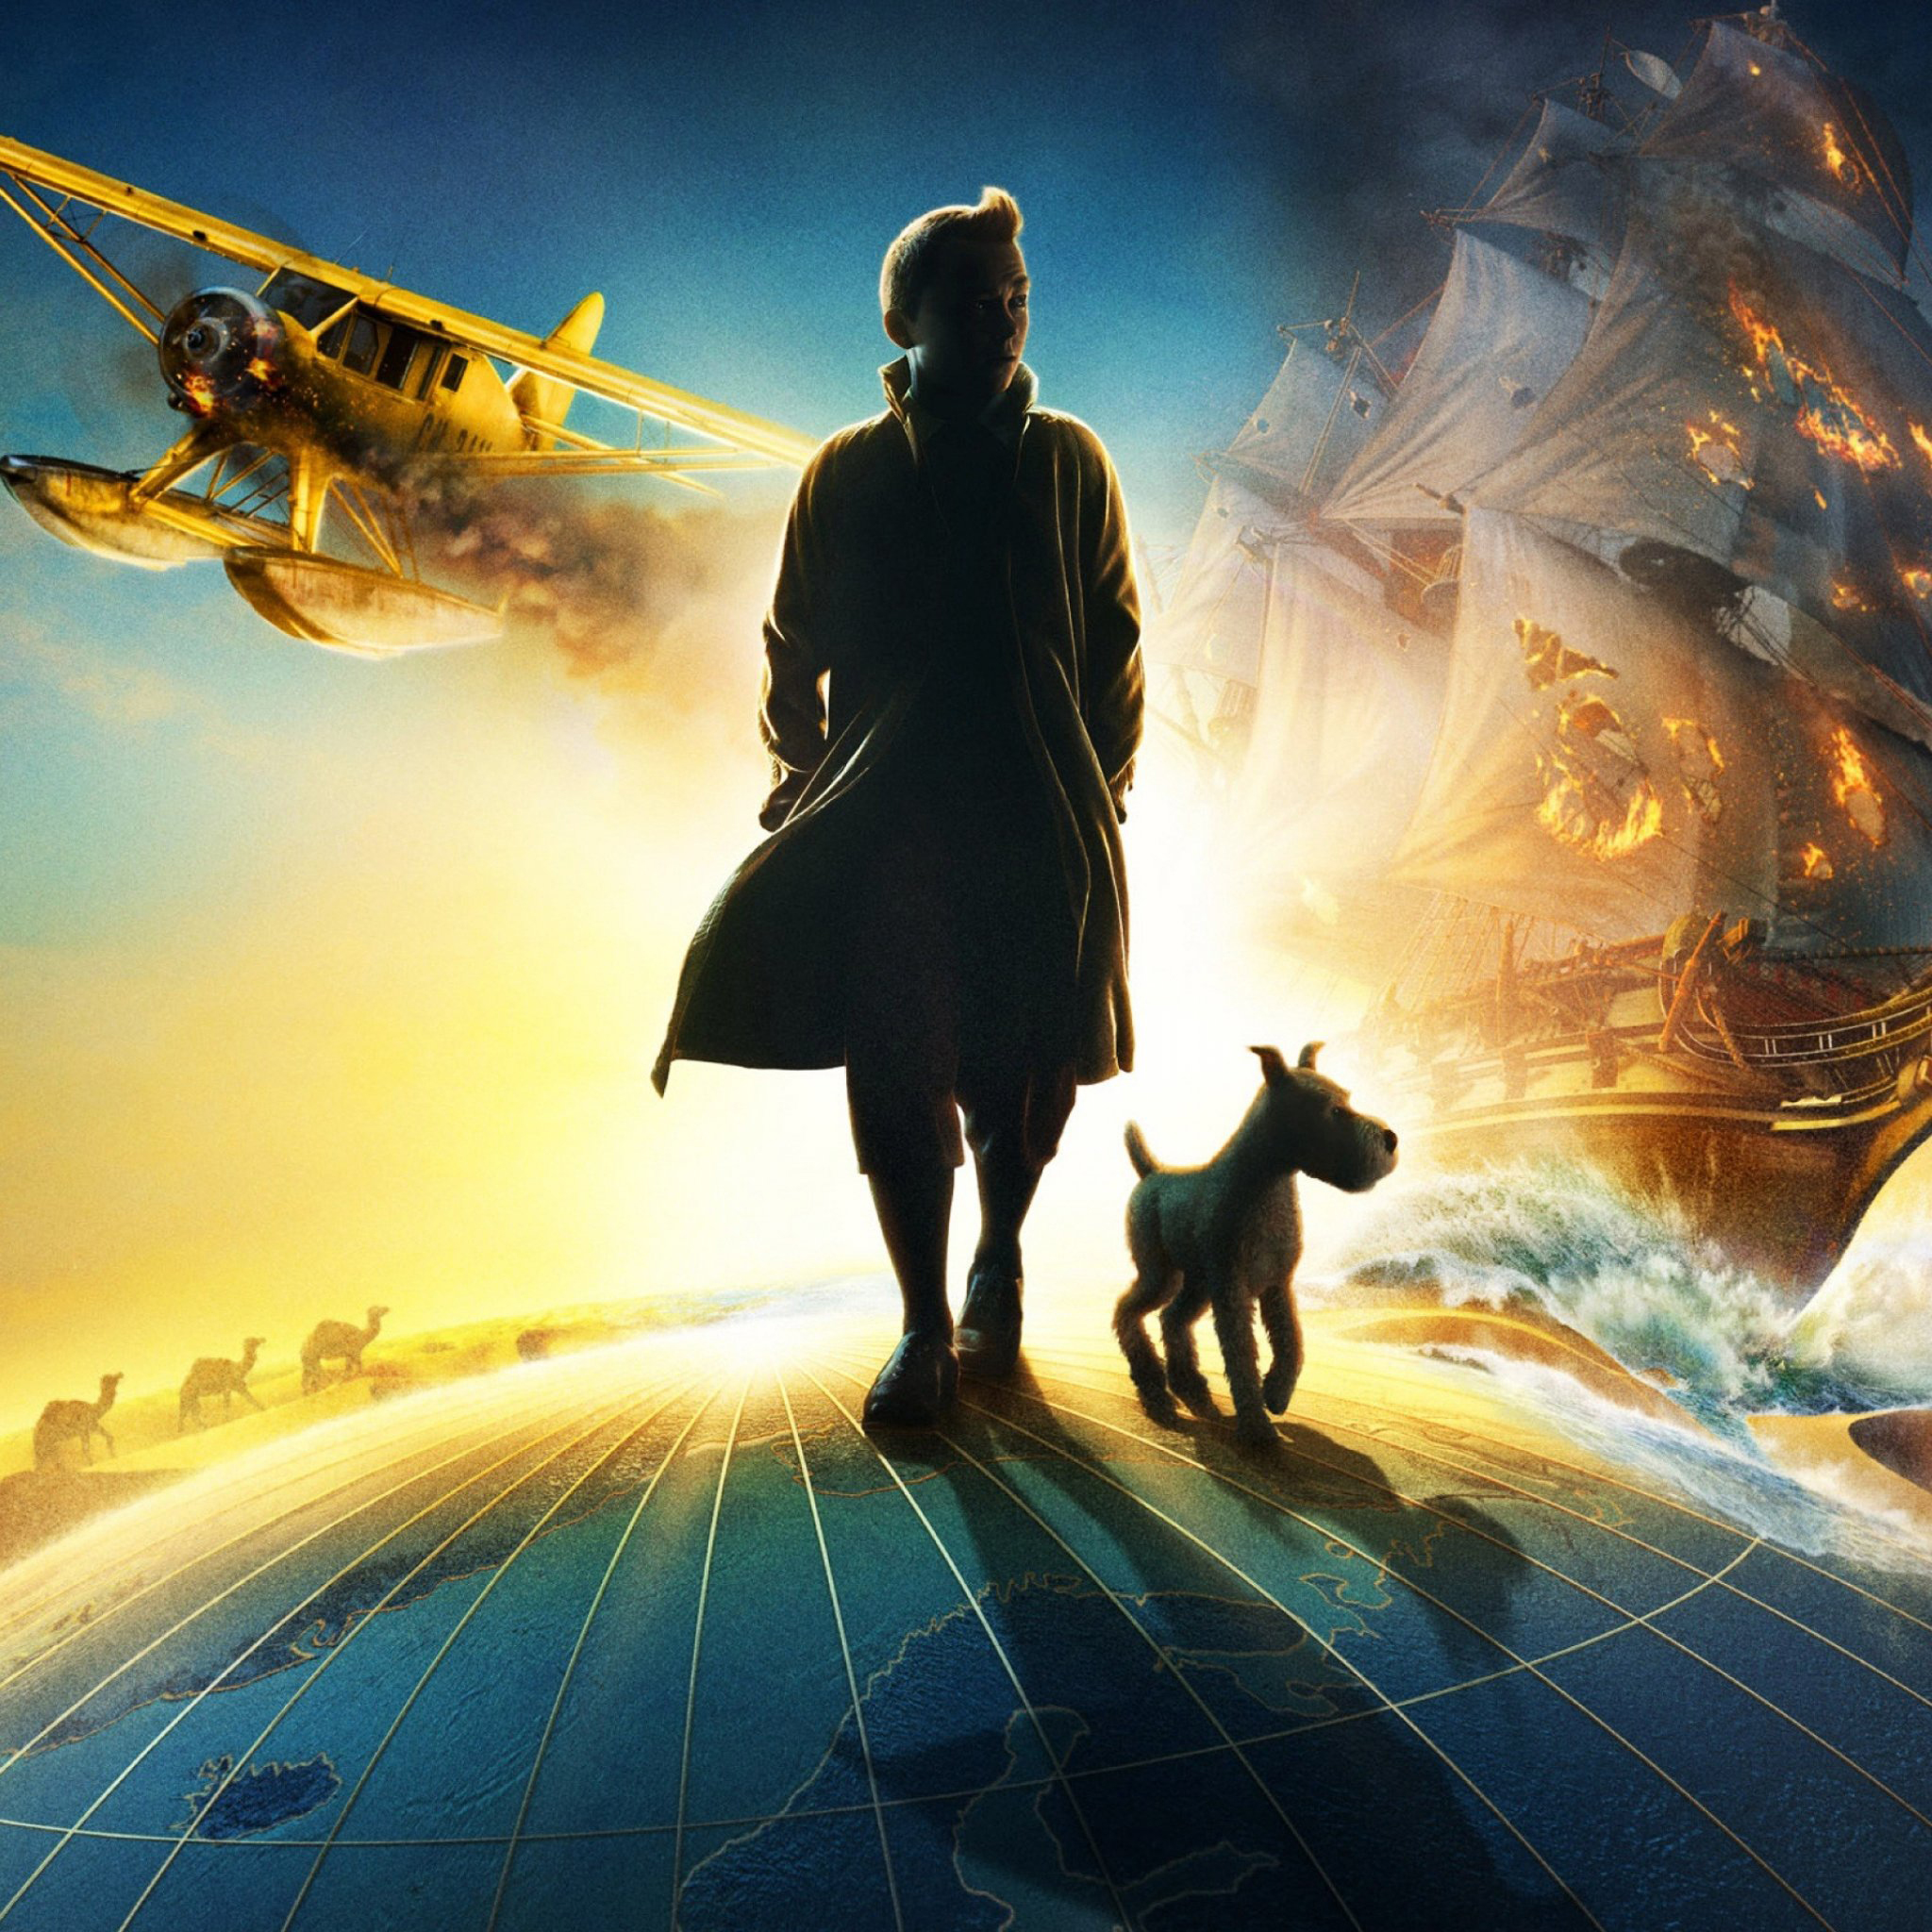 The Adventures of Tintin 3Wallpapers iPad Retina The Adventures of Tintin   iPad Retina